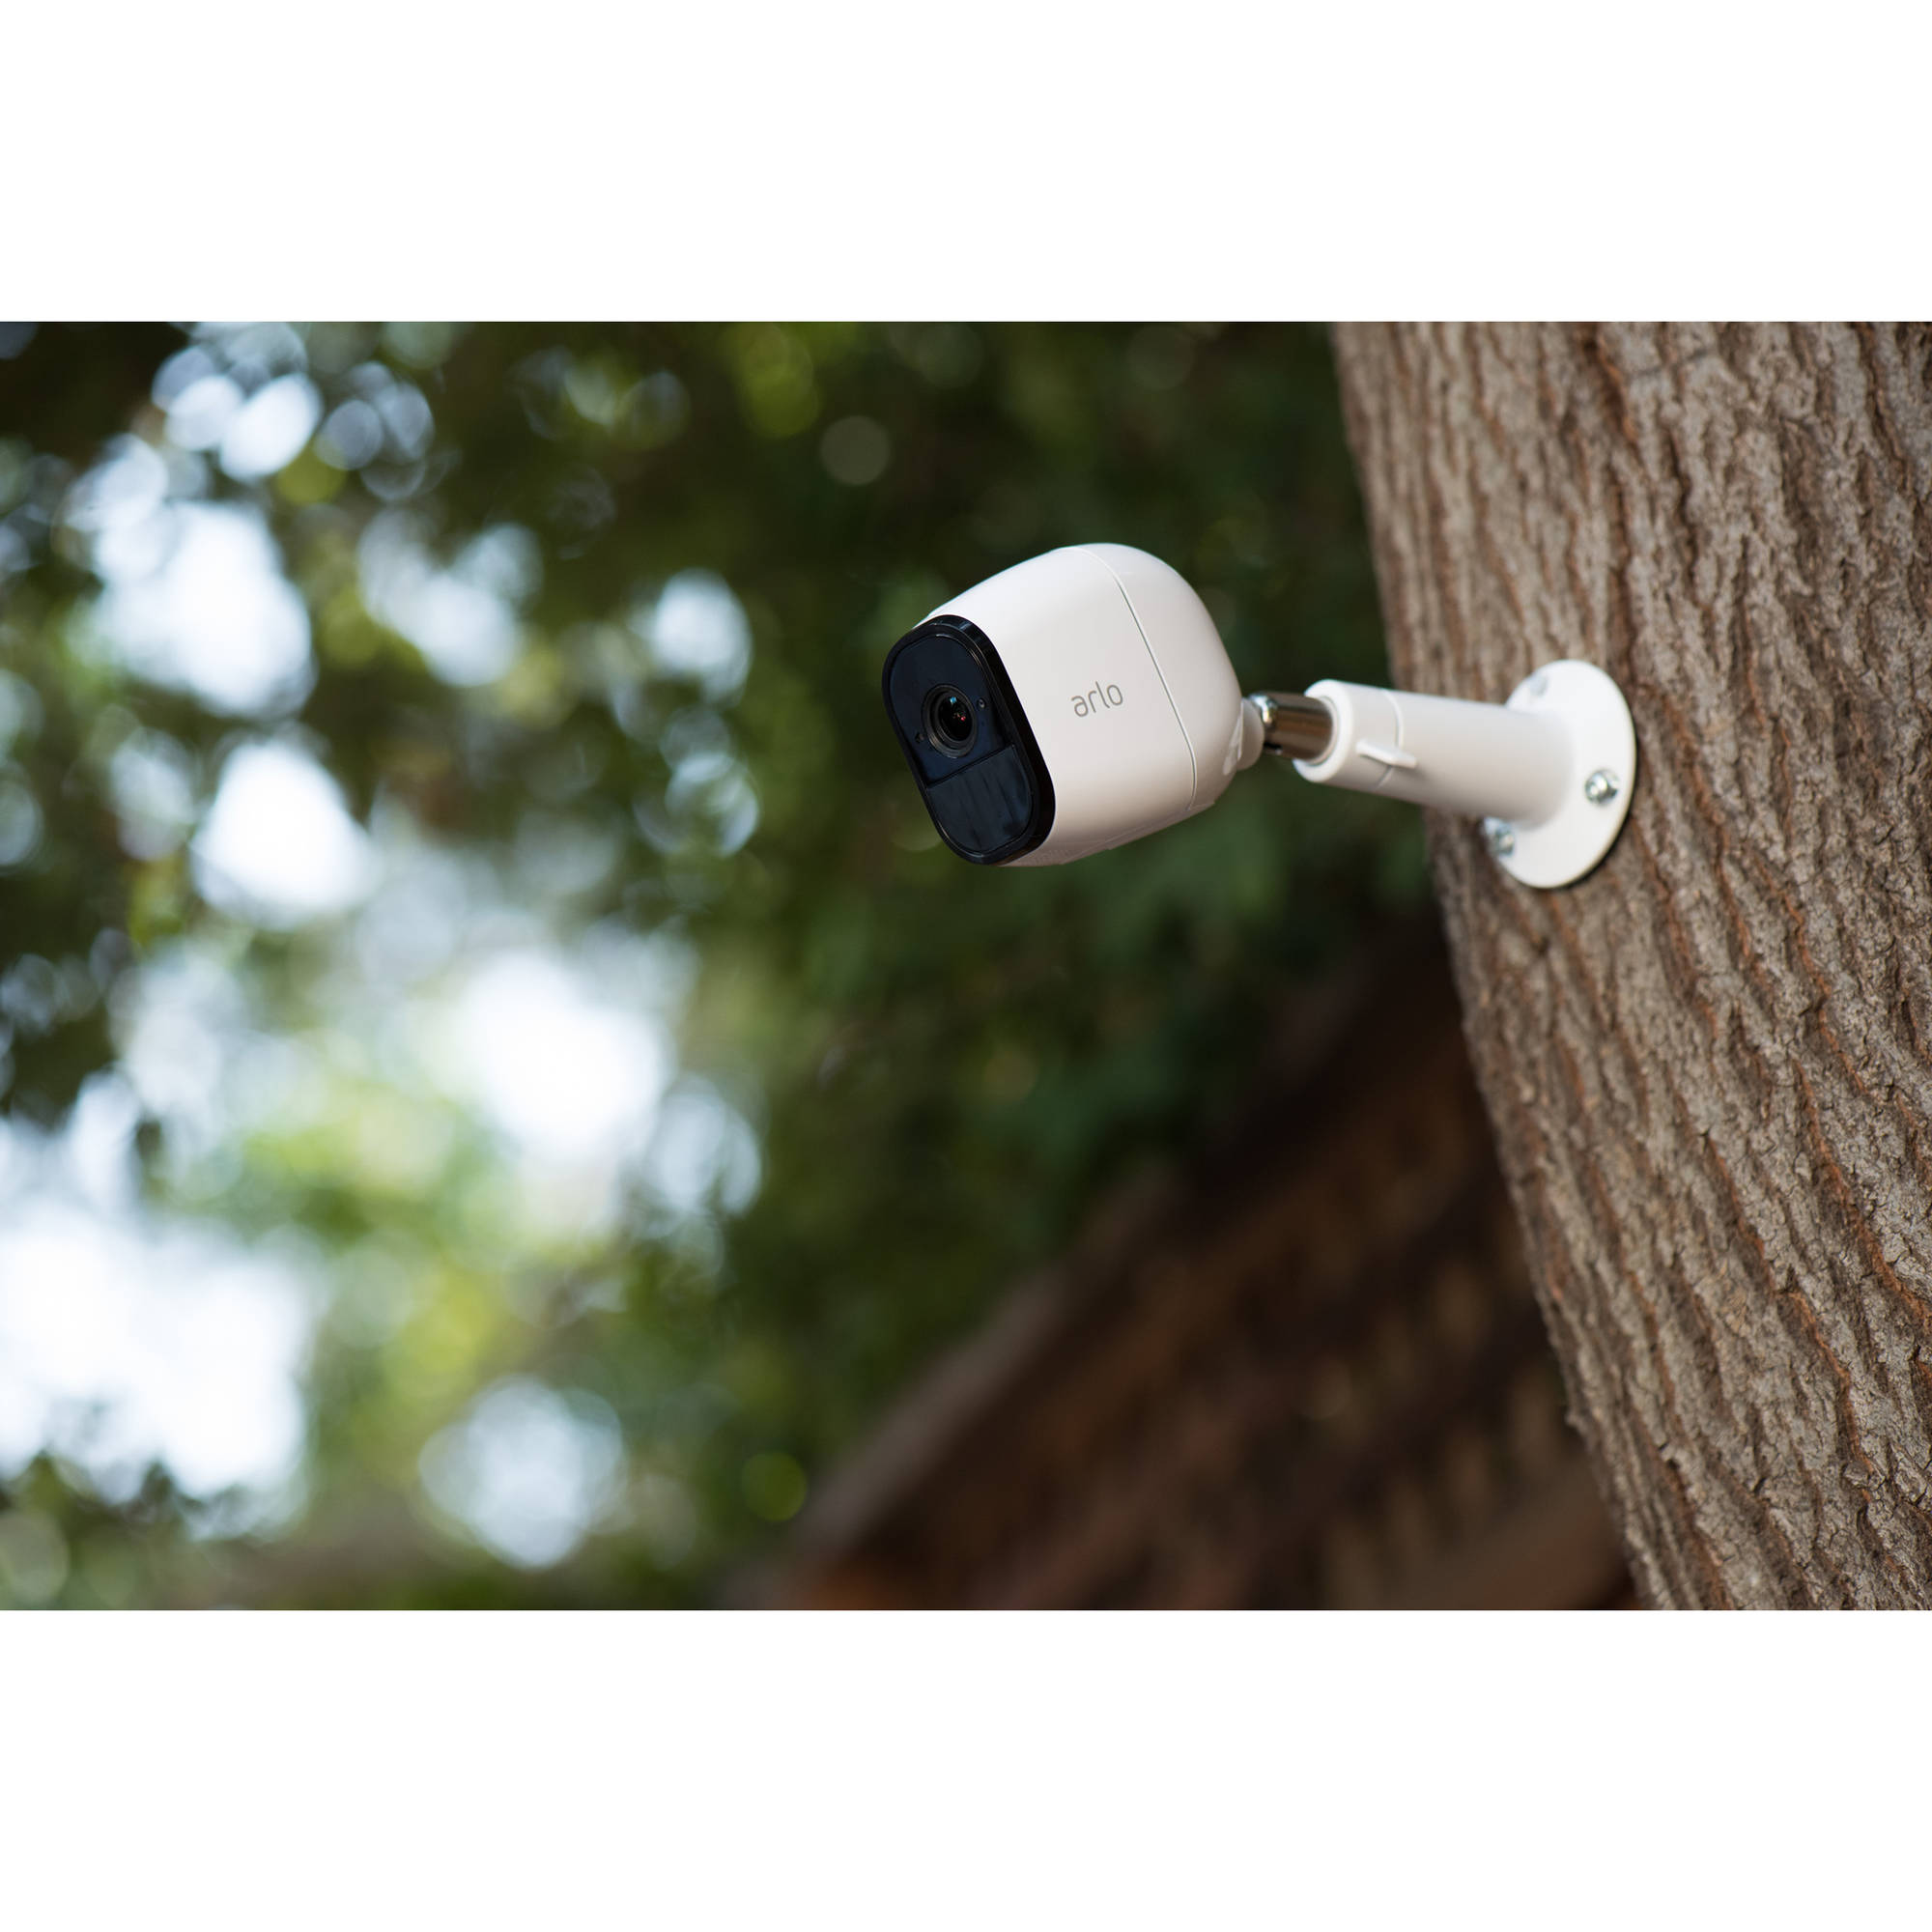 arlo Pro Smart Security System with Base Station & 1 720p Outdoor Wireless  Camera